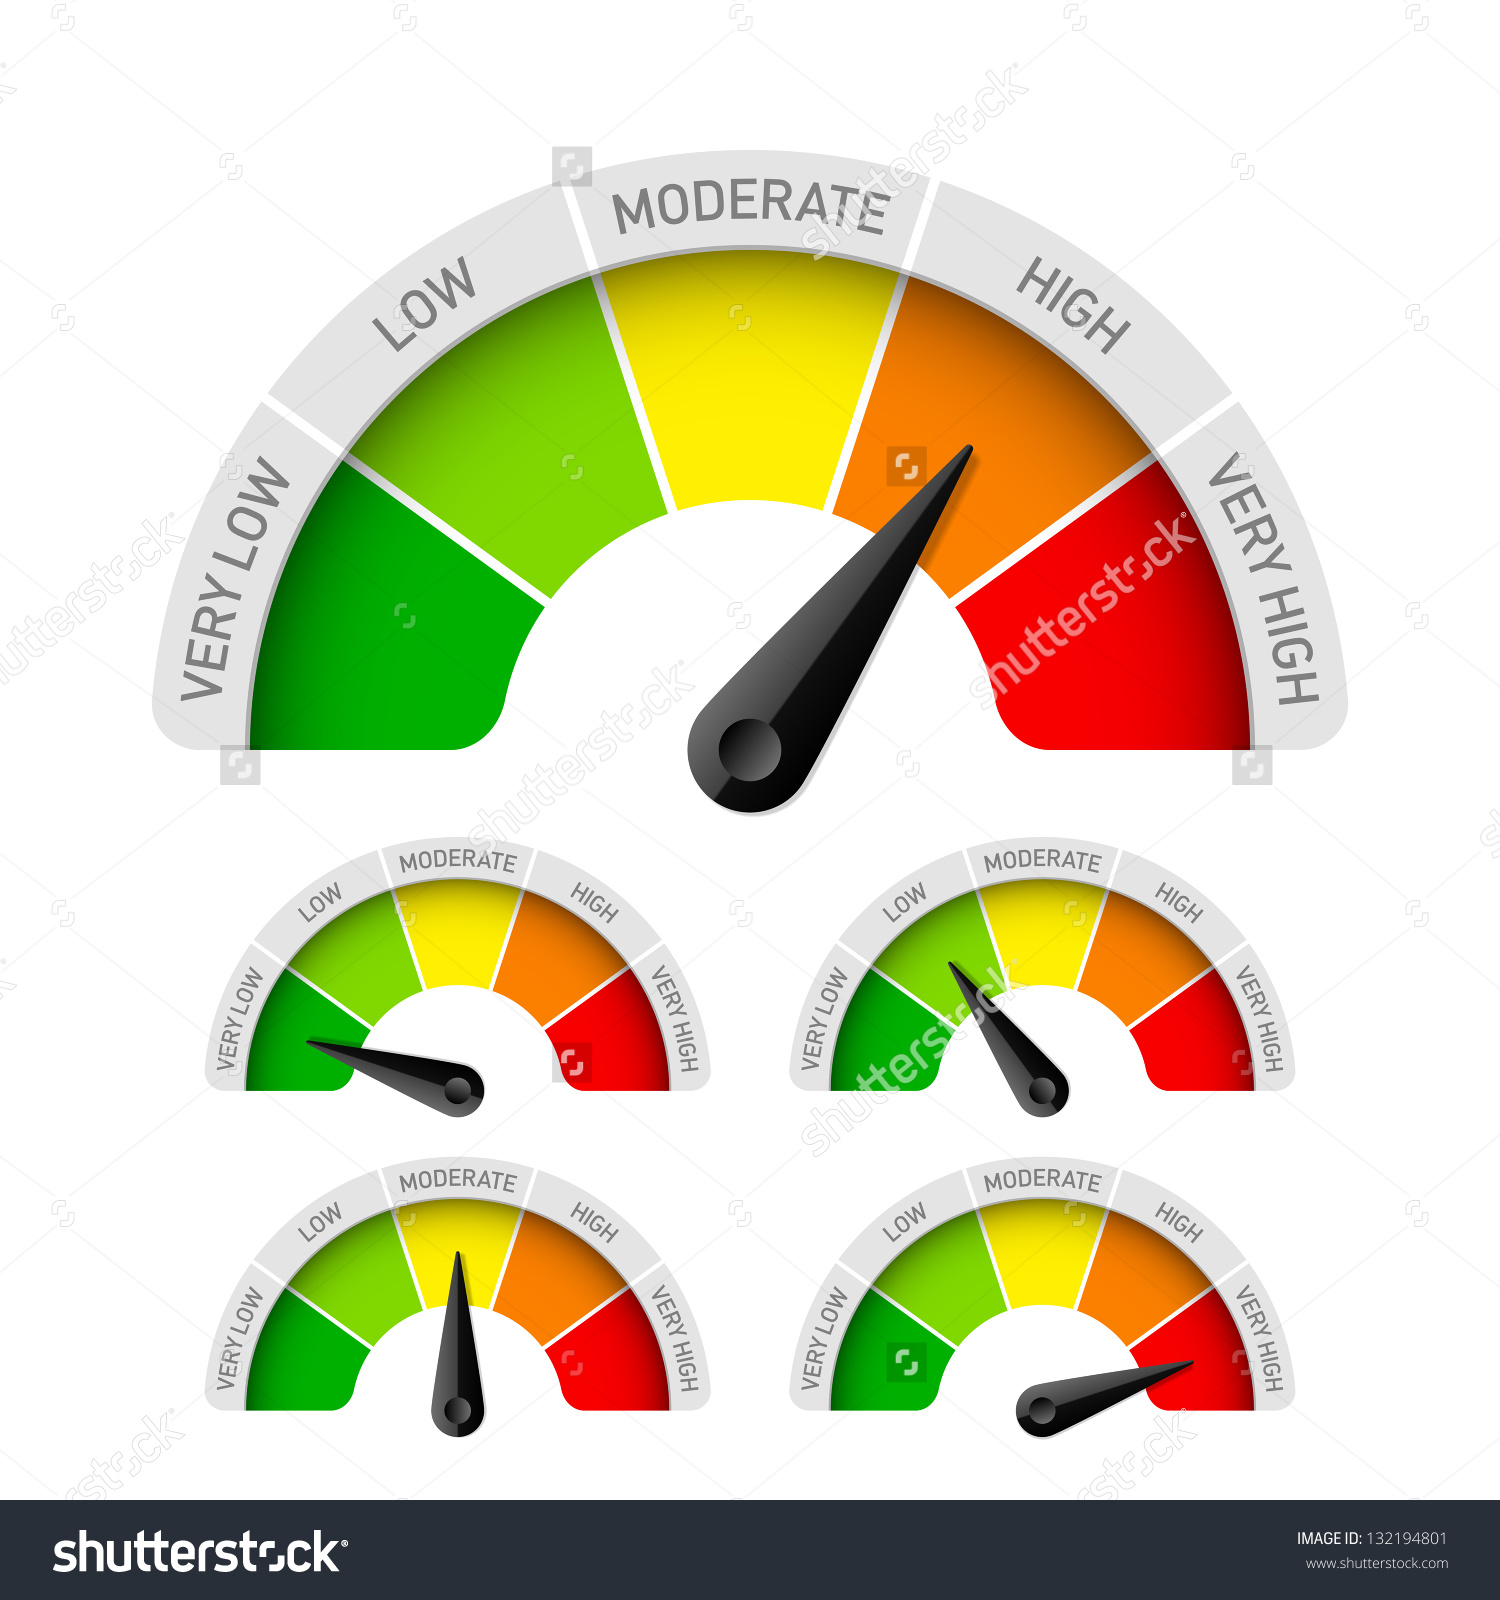 Low Moderate High Rating Meter Vector Stock Vector 132194801.